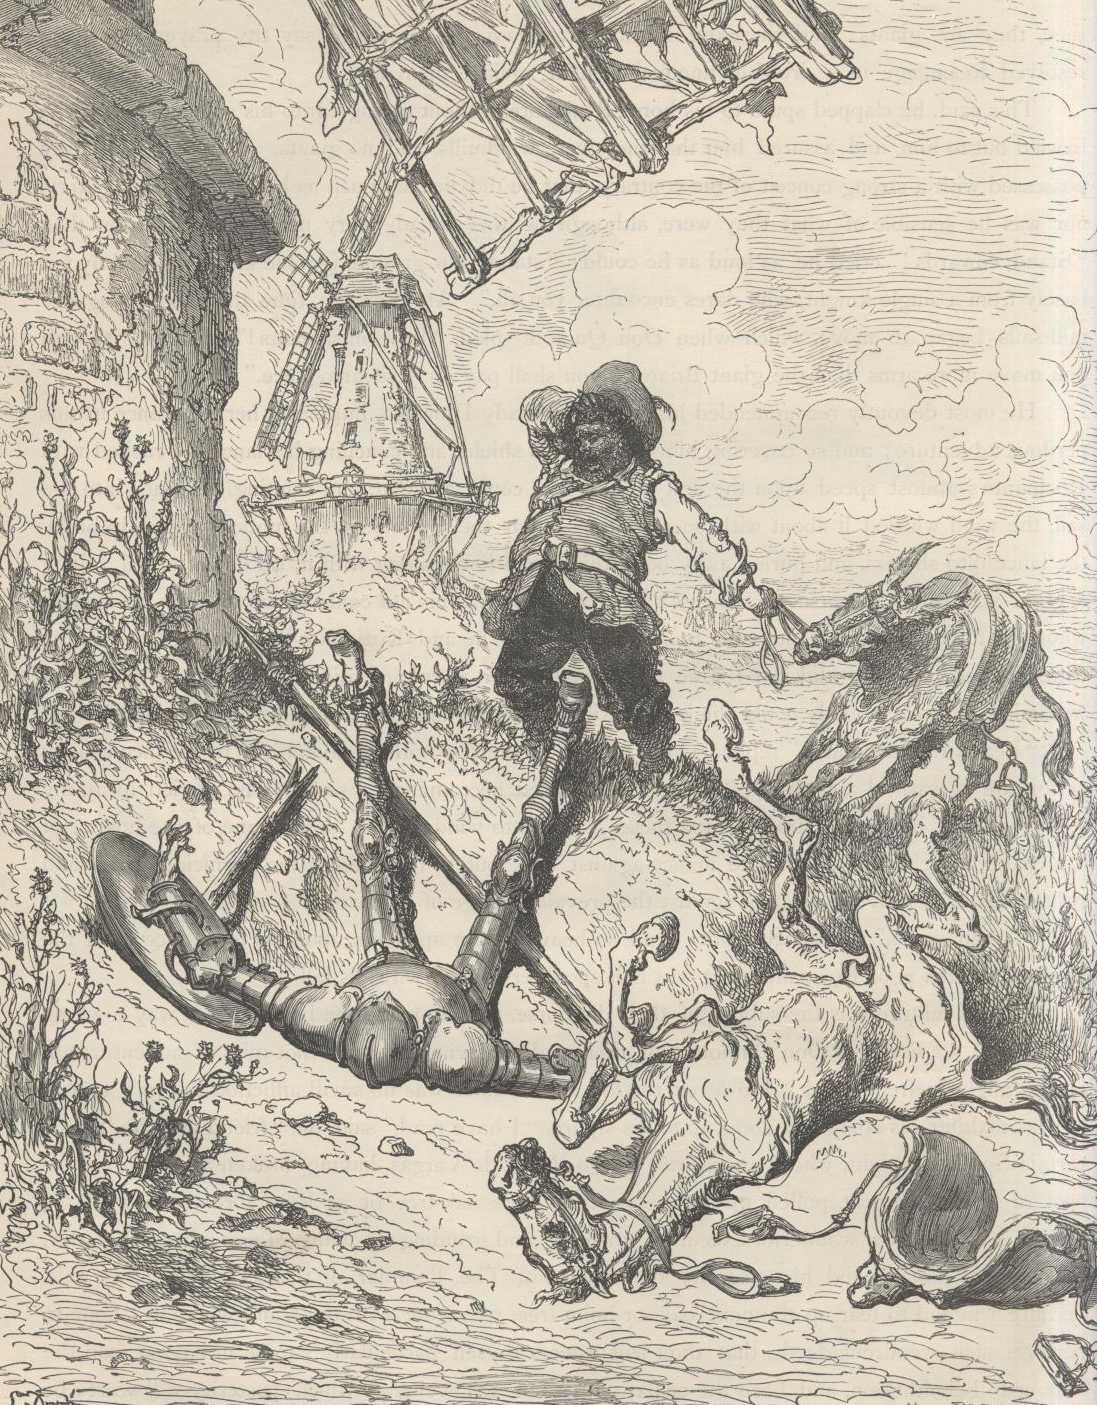 don quixote by miguel de cervantes chapter viii of the good fortune which the valiant don quixote had in the terrible and undreamt of adventure of the windmills other occurrences worthy to be fitly